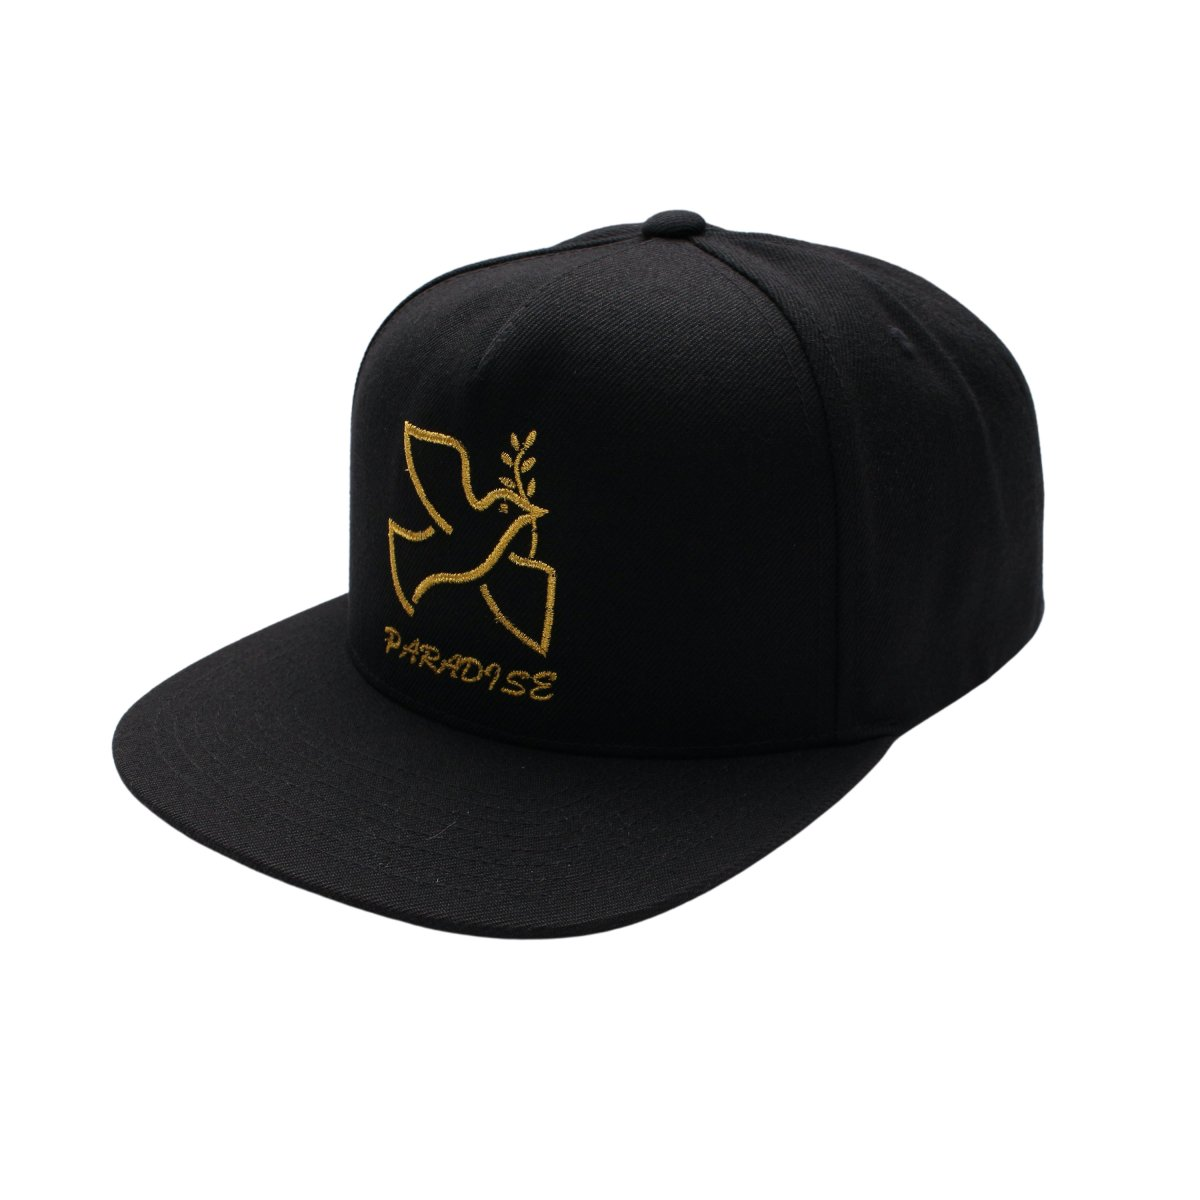 DOVE OF PARADISE 5-PANEL EMBROIDERED